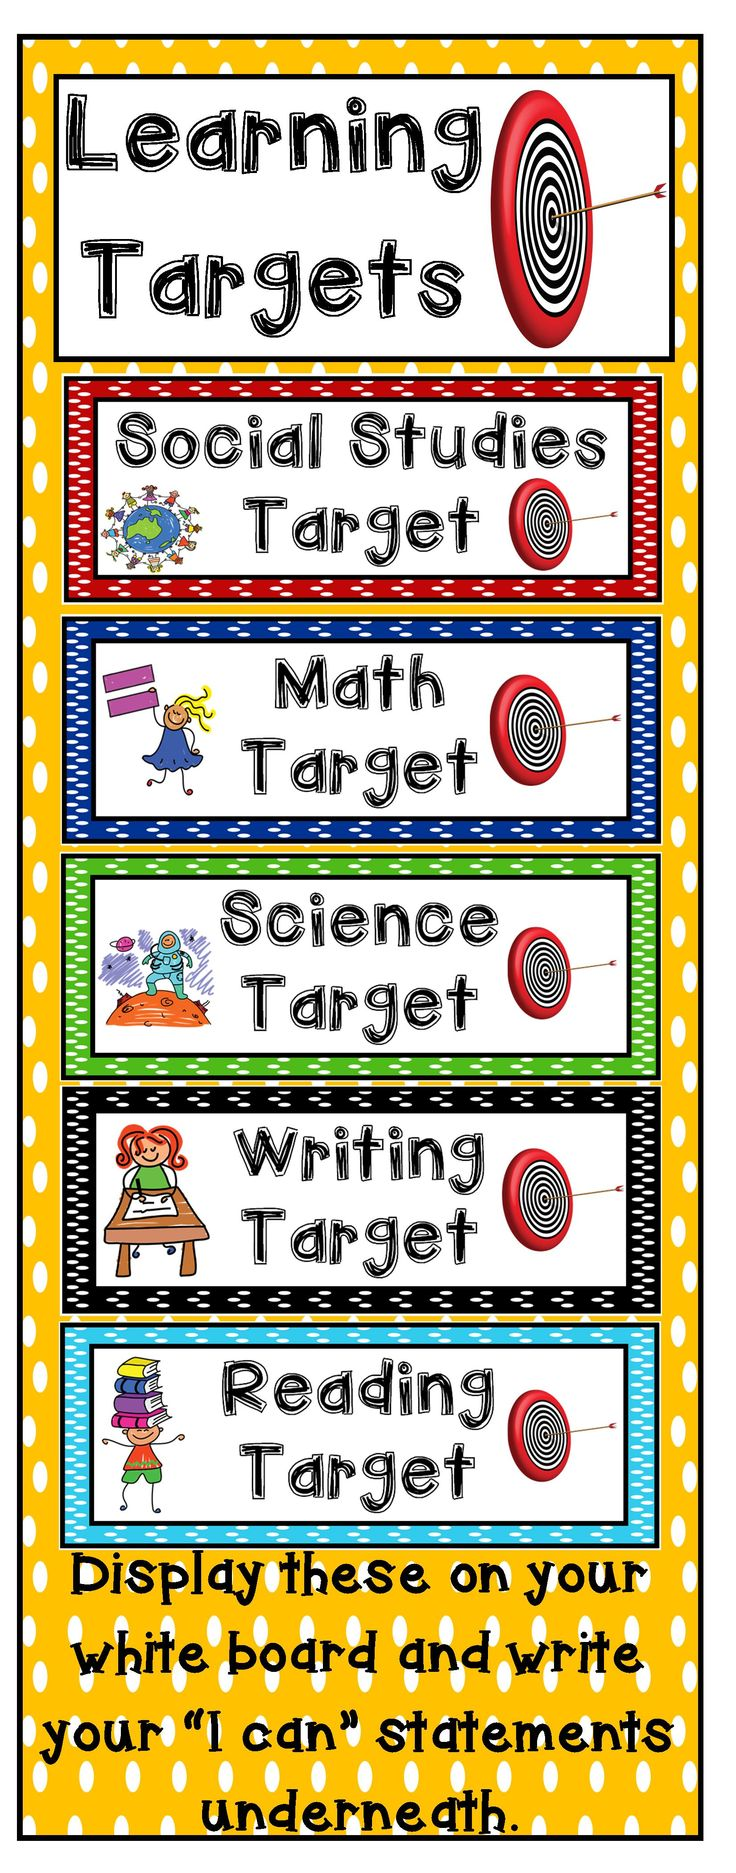 5 Learning Target Signs for the basic subjects: reading, writing, math, science and social studies. Display these signs and write your learning target underneath. A learning target helps students grasp the lesson's purpose--why it is crucial to learn this chunk of information, on this day, and in this way.